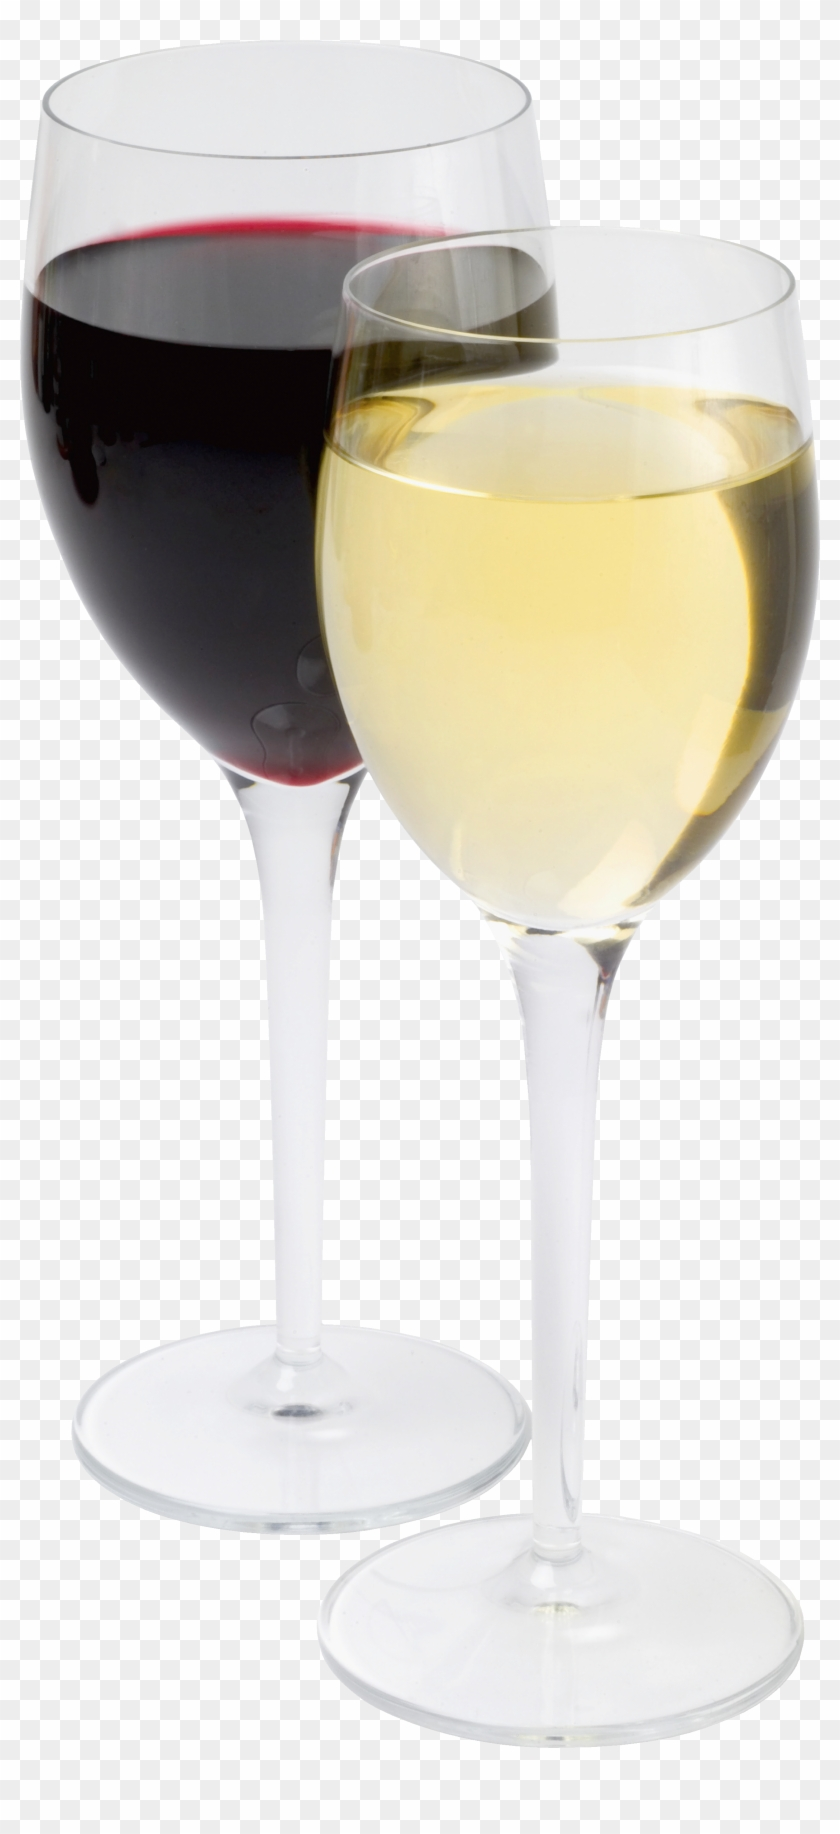 28 Collection Of Wine Glass Transparent Background - White Wine Glass Transparent Background #532672